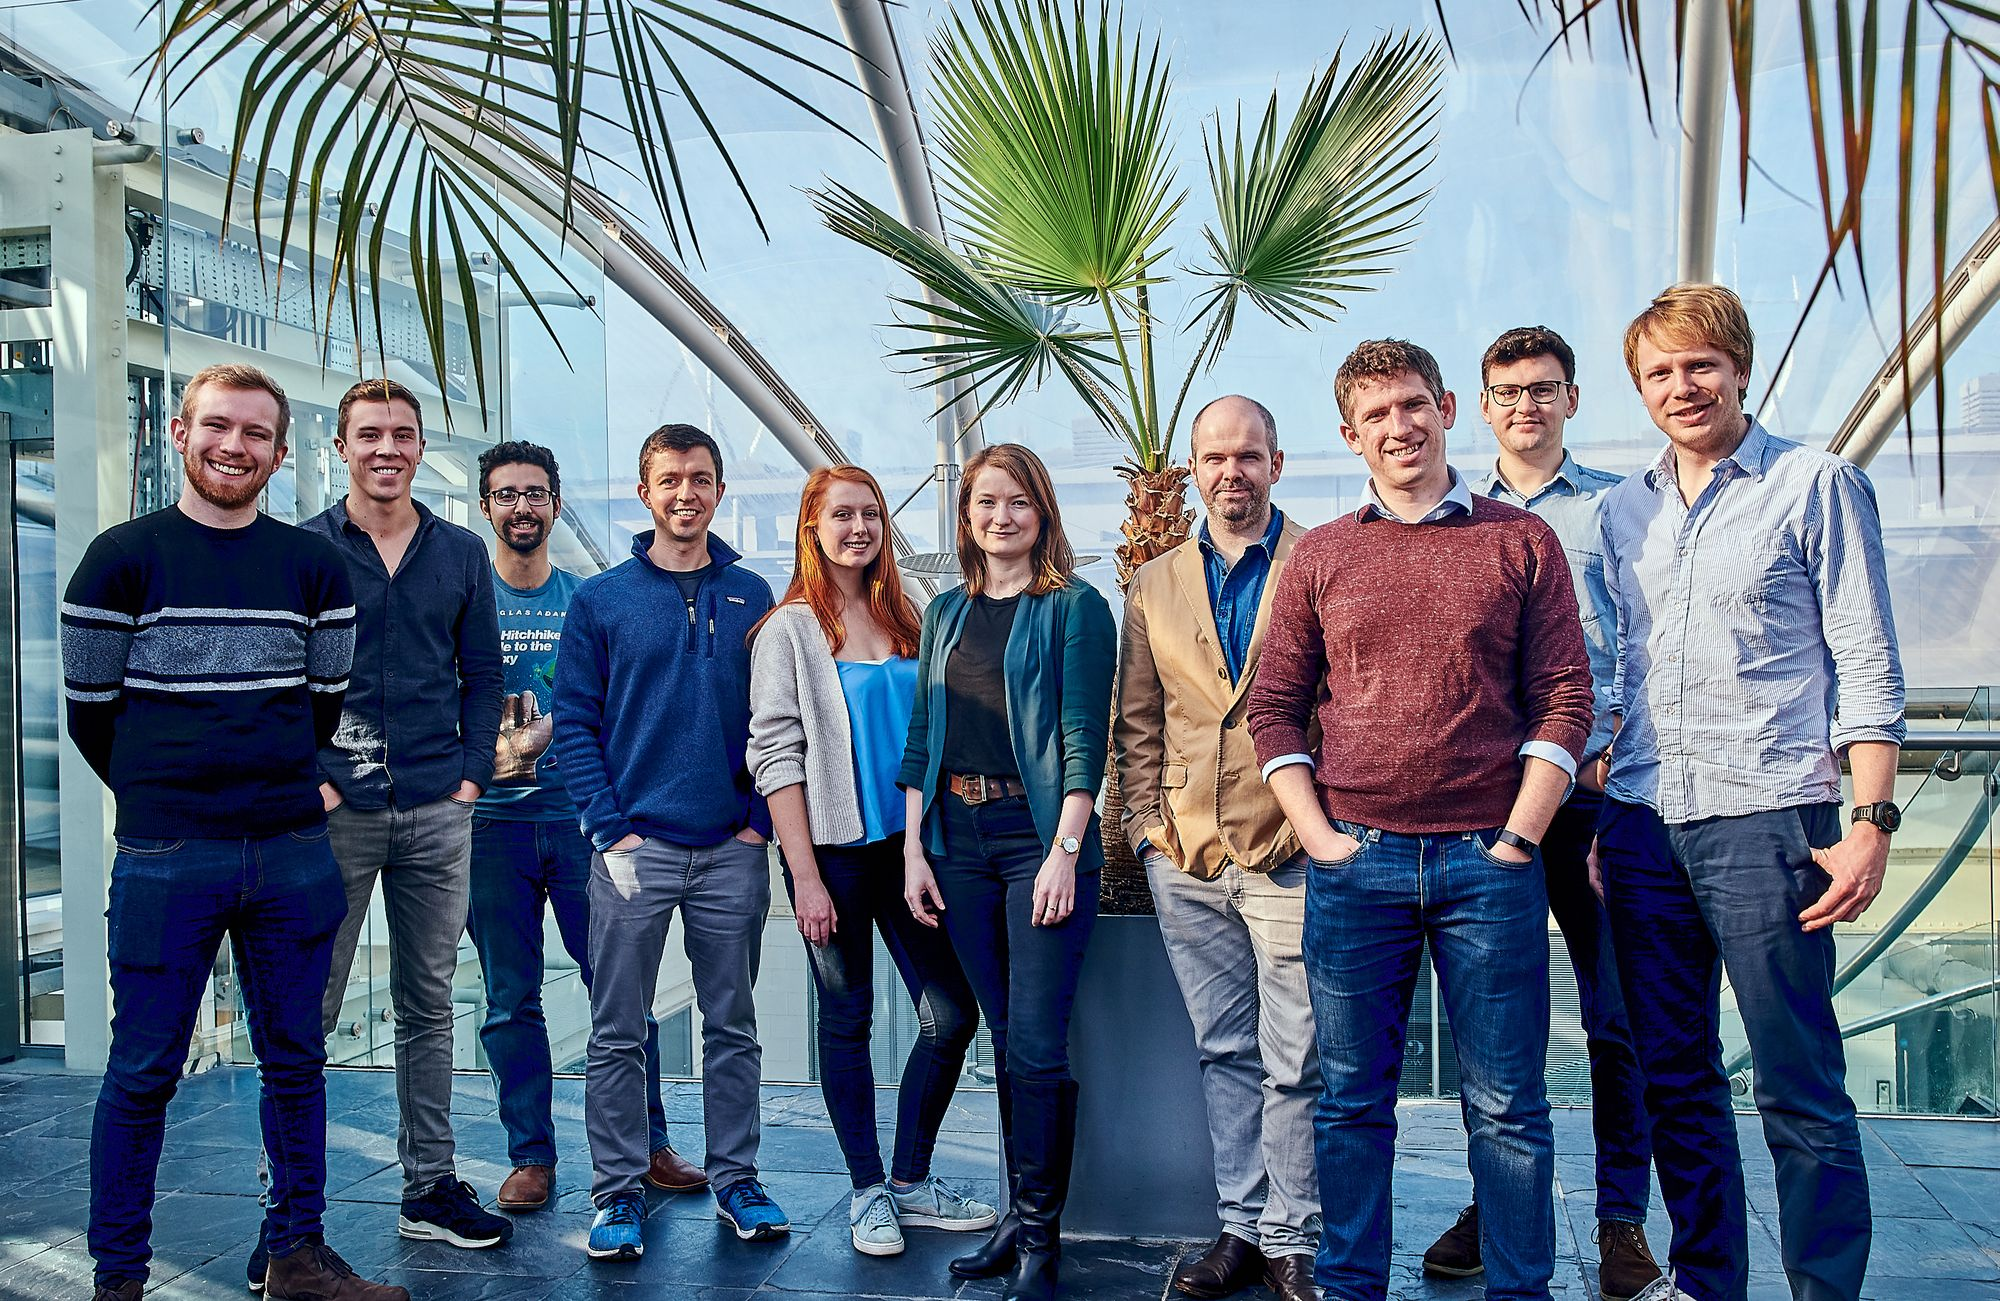 Insurtech startup Urban Jungle raises £2.5 million in seed funding